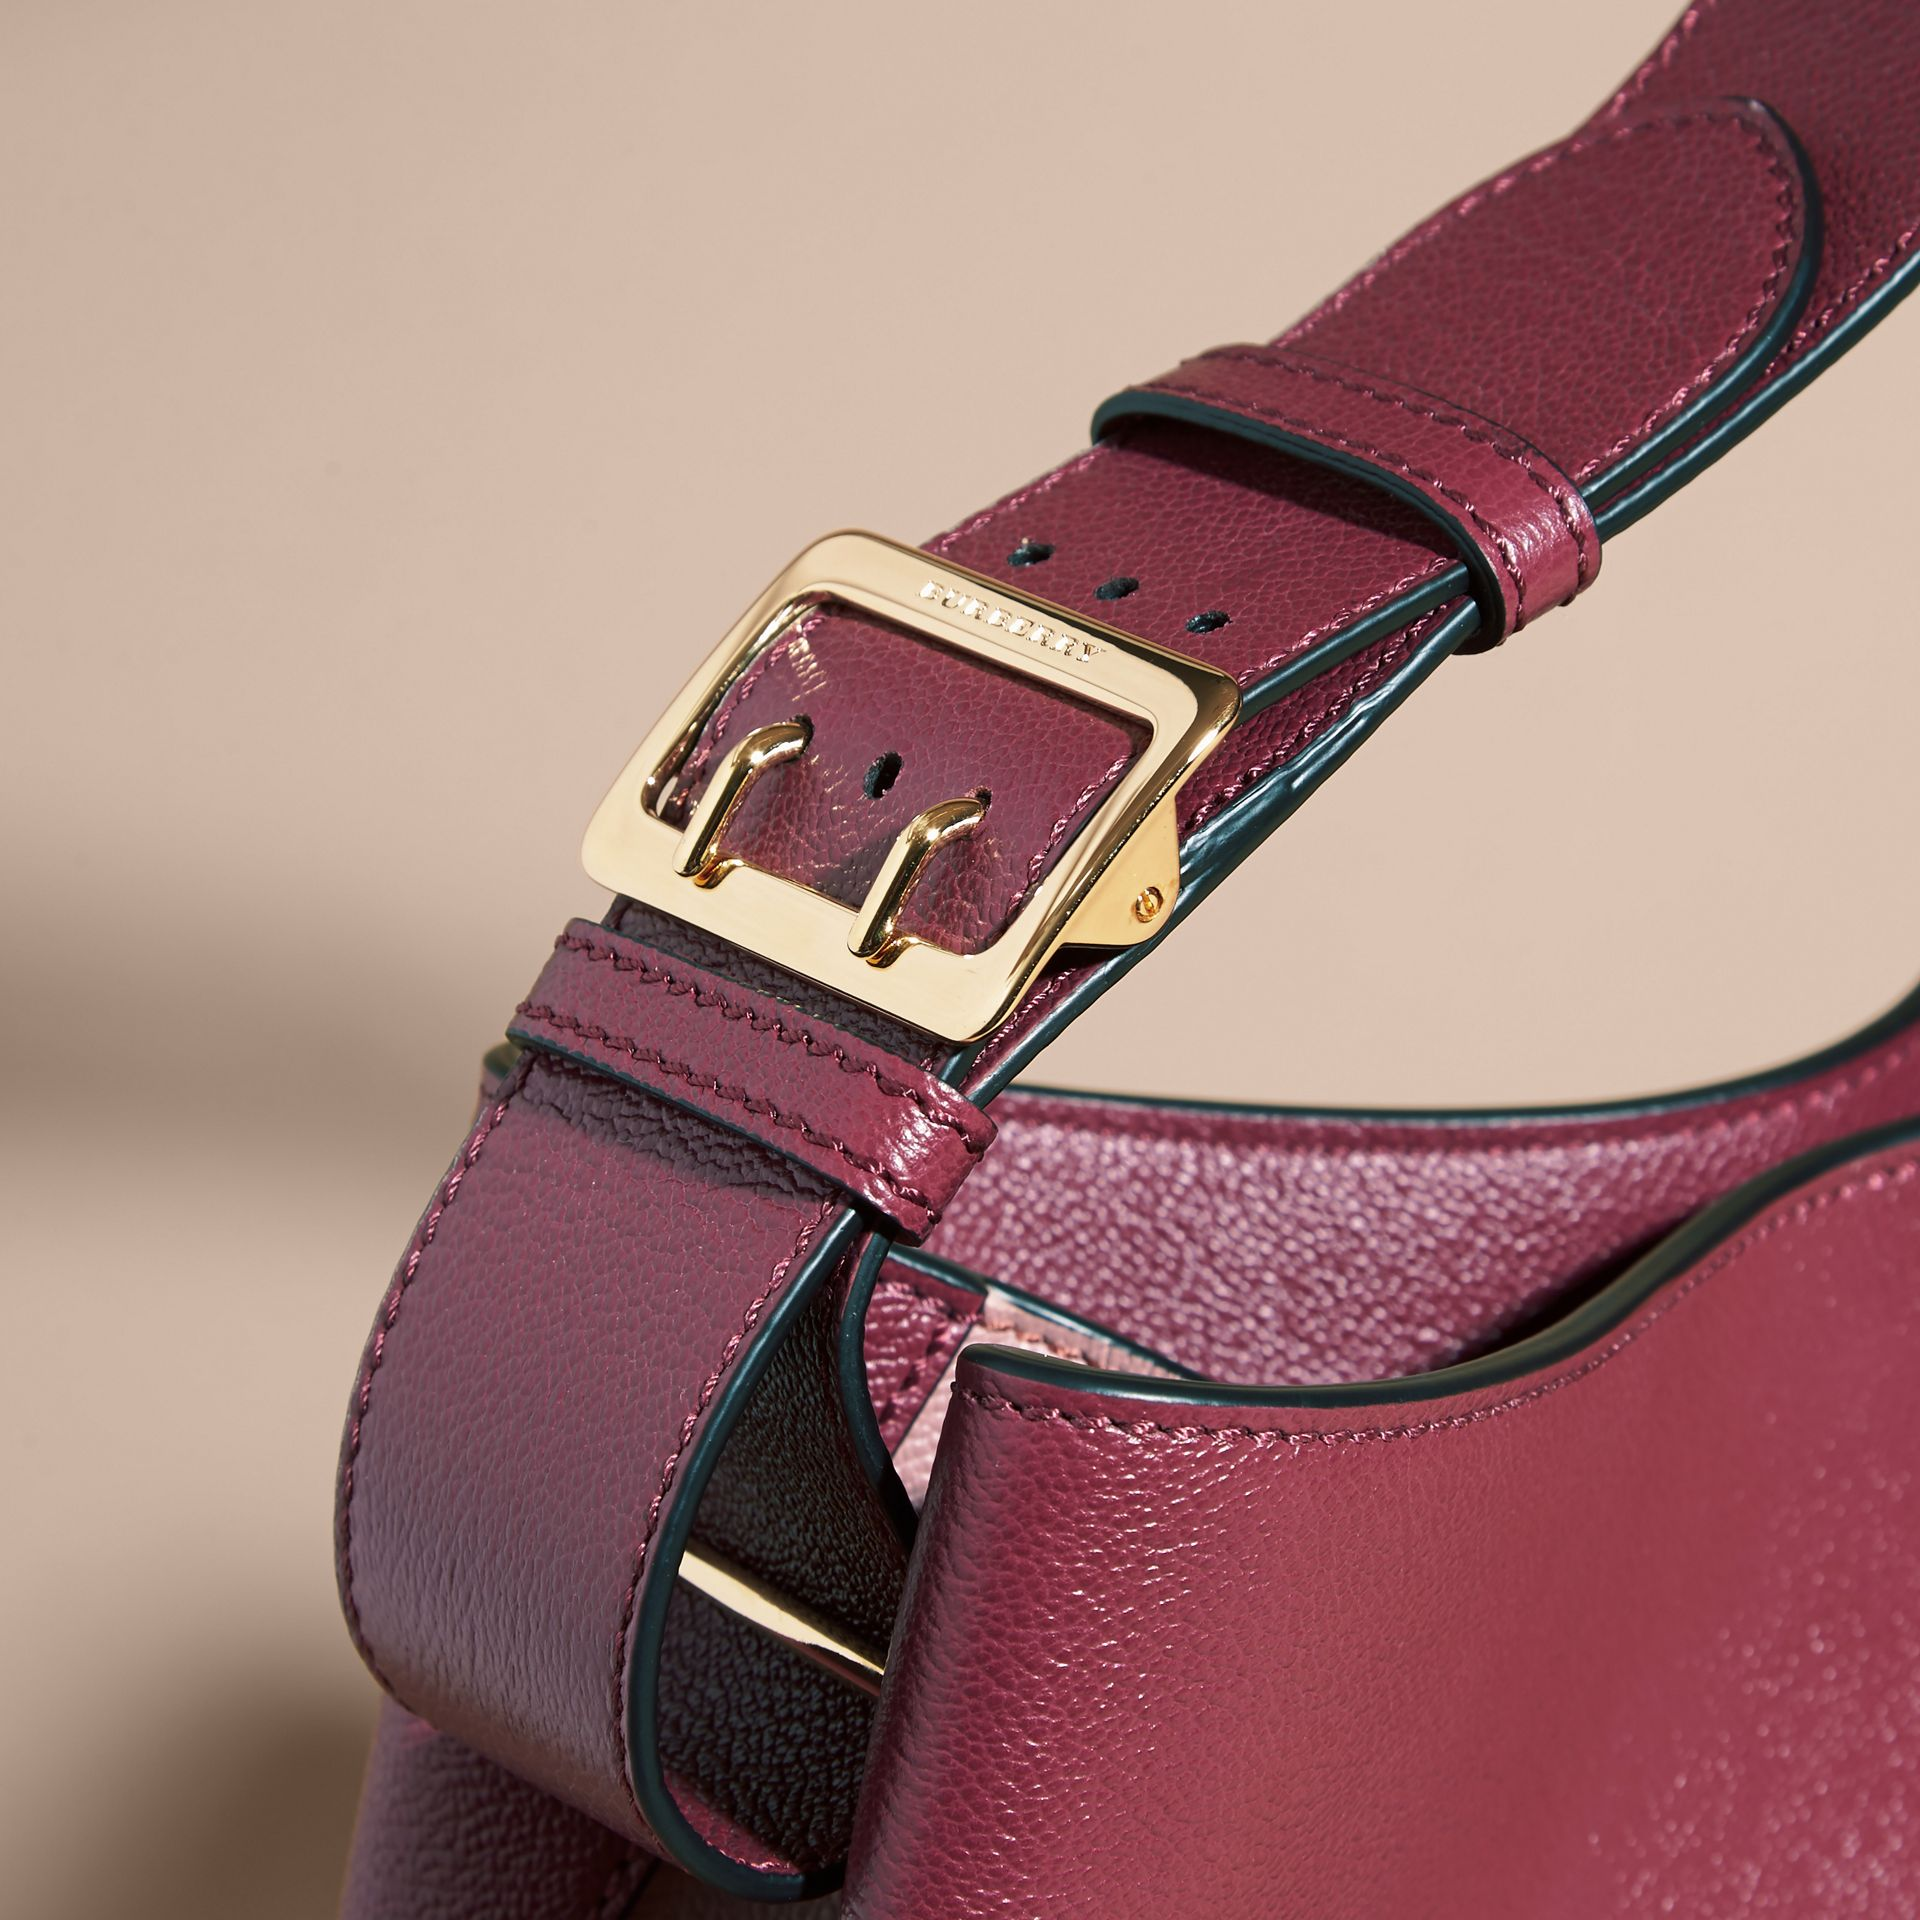 Textured Leather Shoulder Bag in Dark Plum/ Dusty Pink - gallery image 2